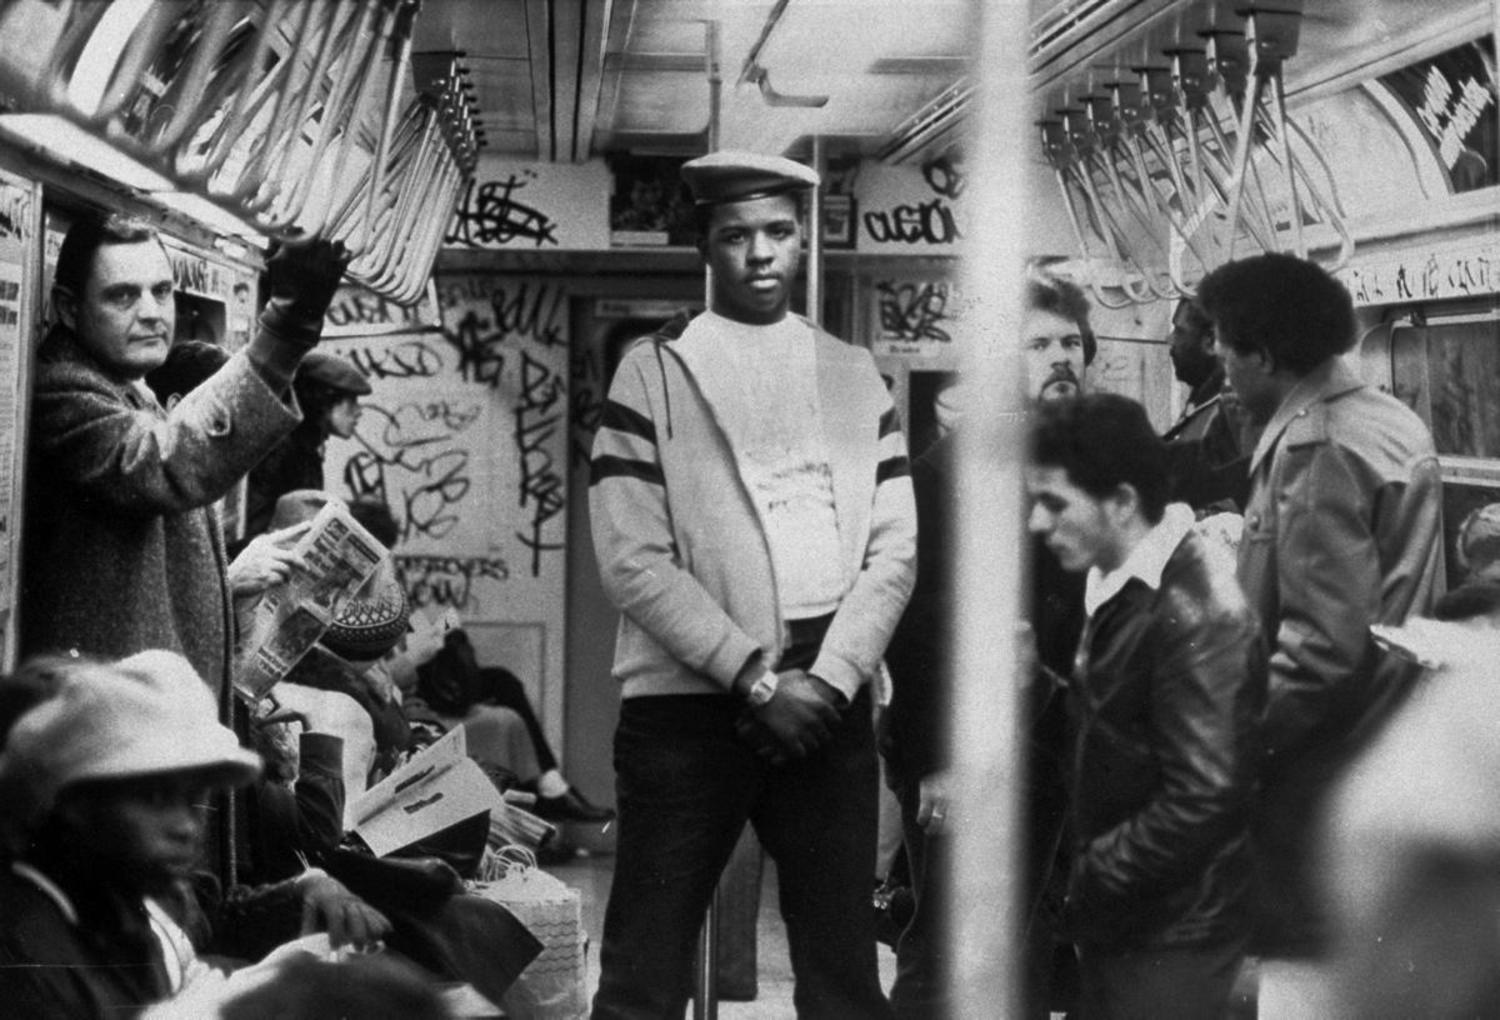 1980's: A member of the volunteer crime-fighting organization, the Guardian Angels, patrols a subway car in the 1980s. The organization was both praised and vilified by the media for its efforts.